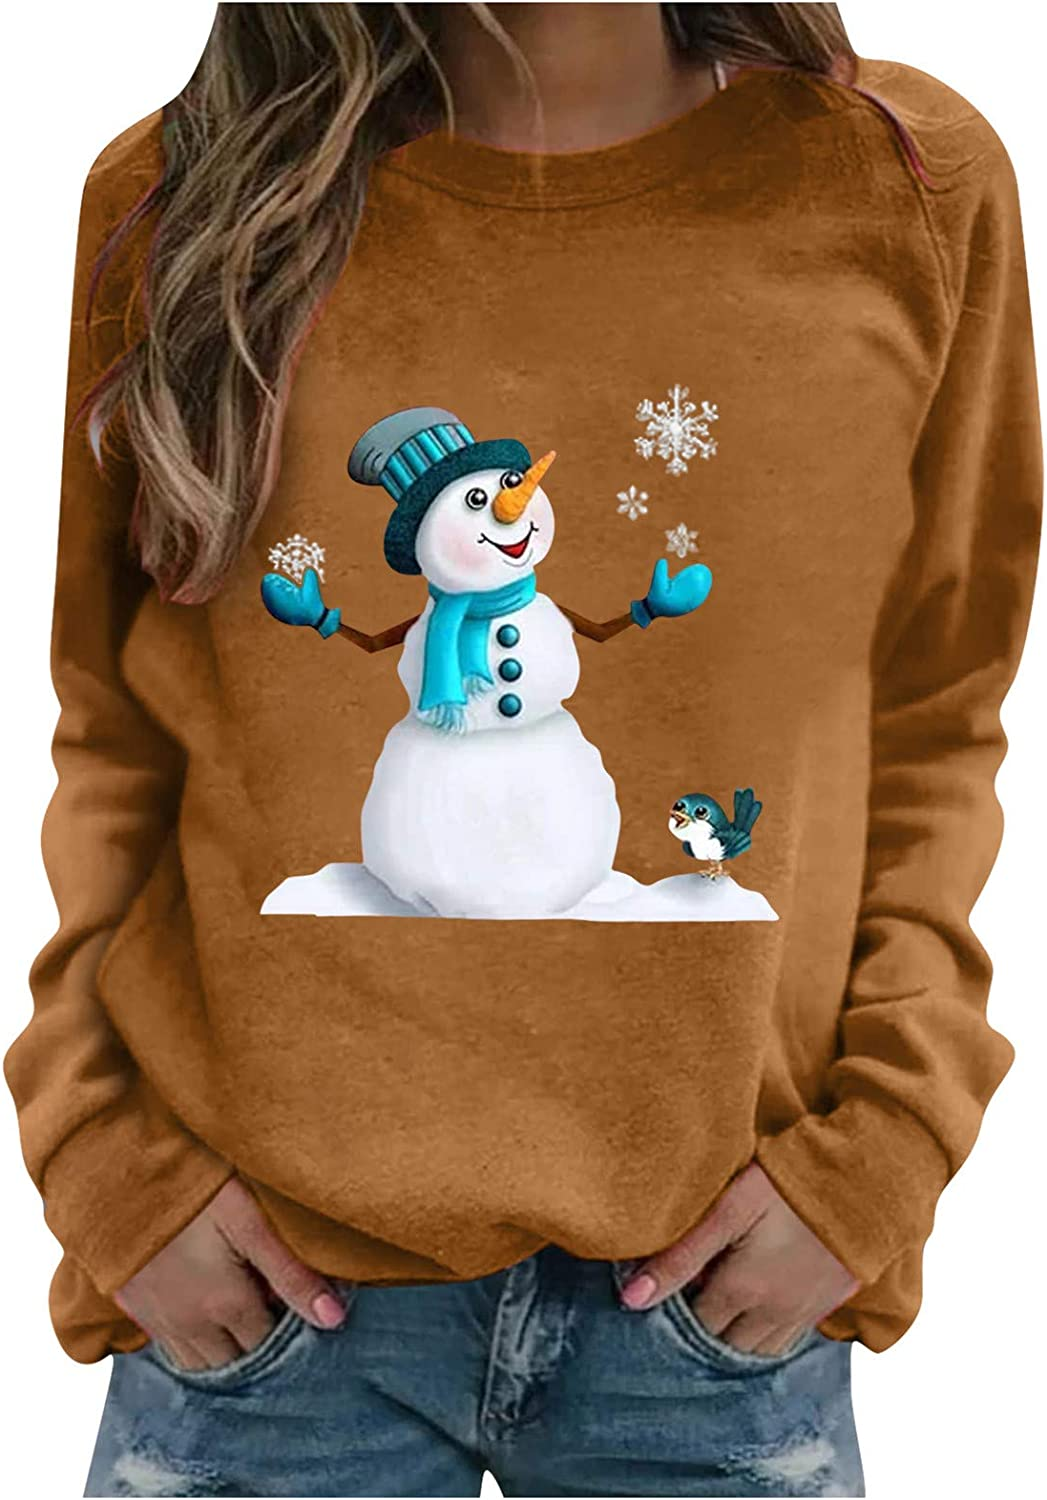 Sweatshirts for Women,Christmas Long Sleeve Tops Pullover Snowman Printed Lovely Graphic O-Neck T-Shirt Blouse